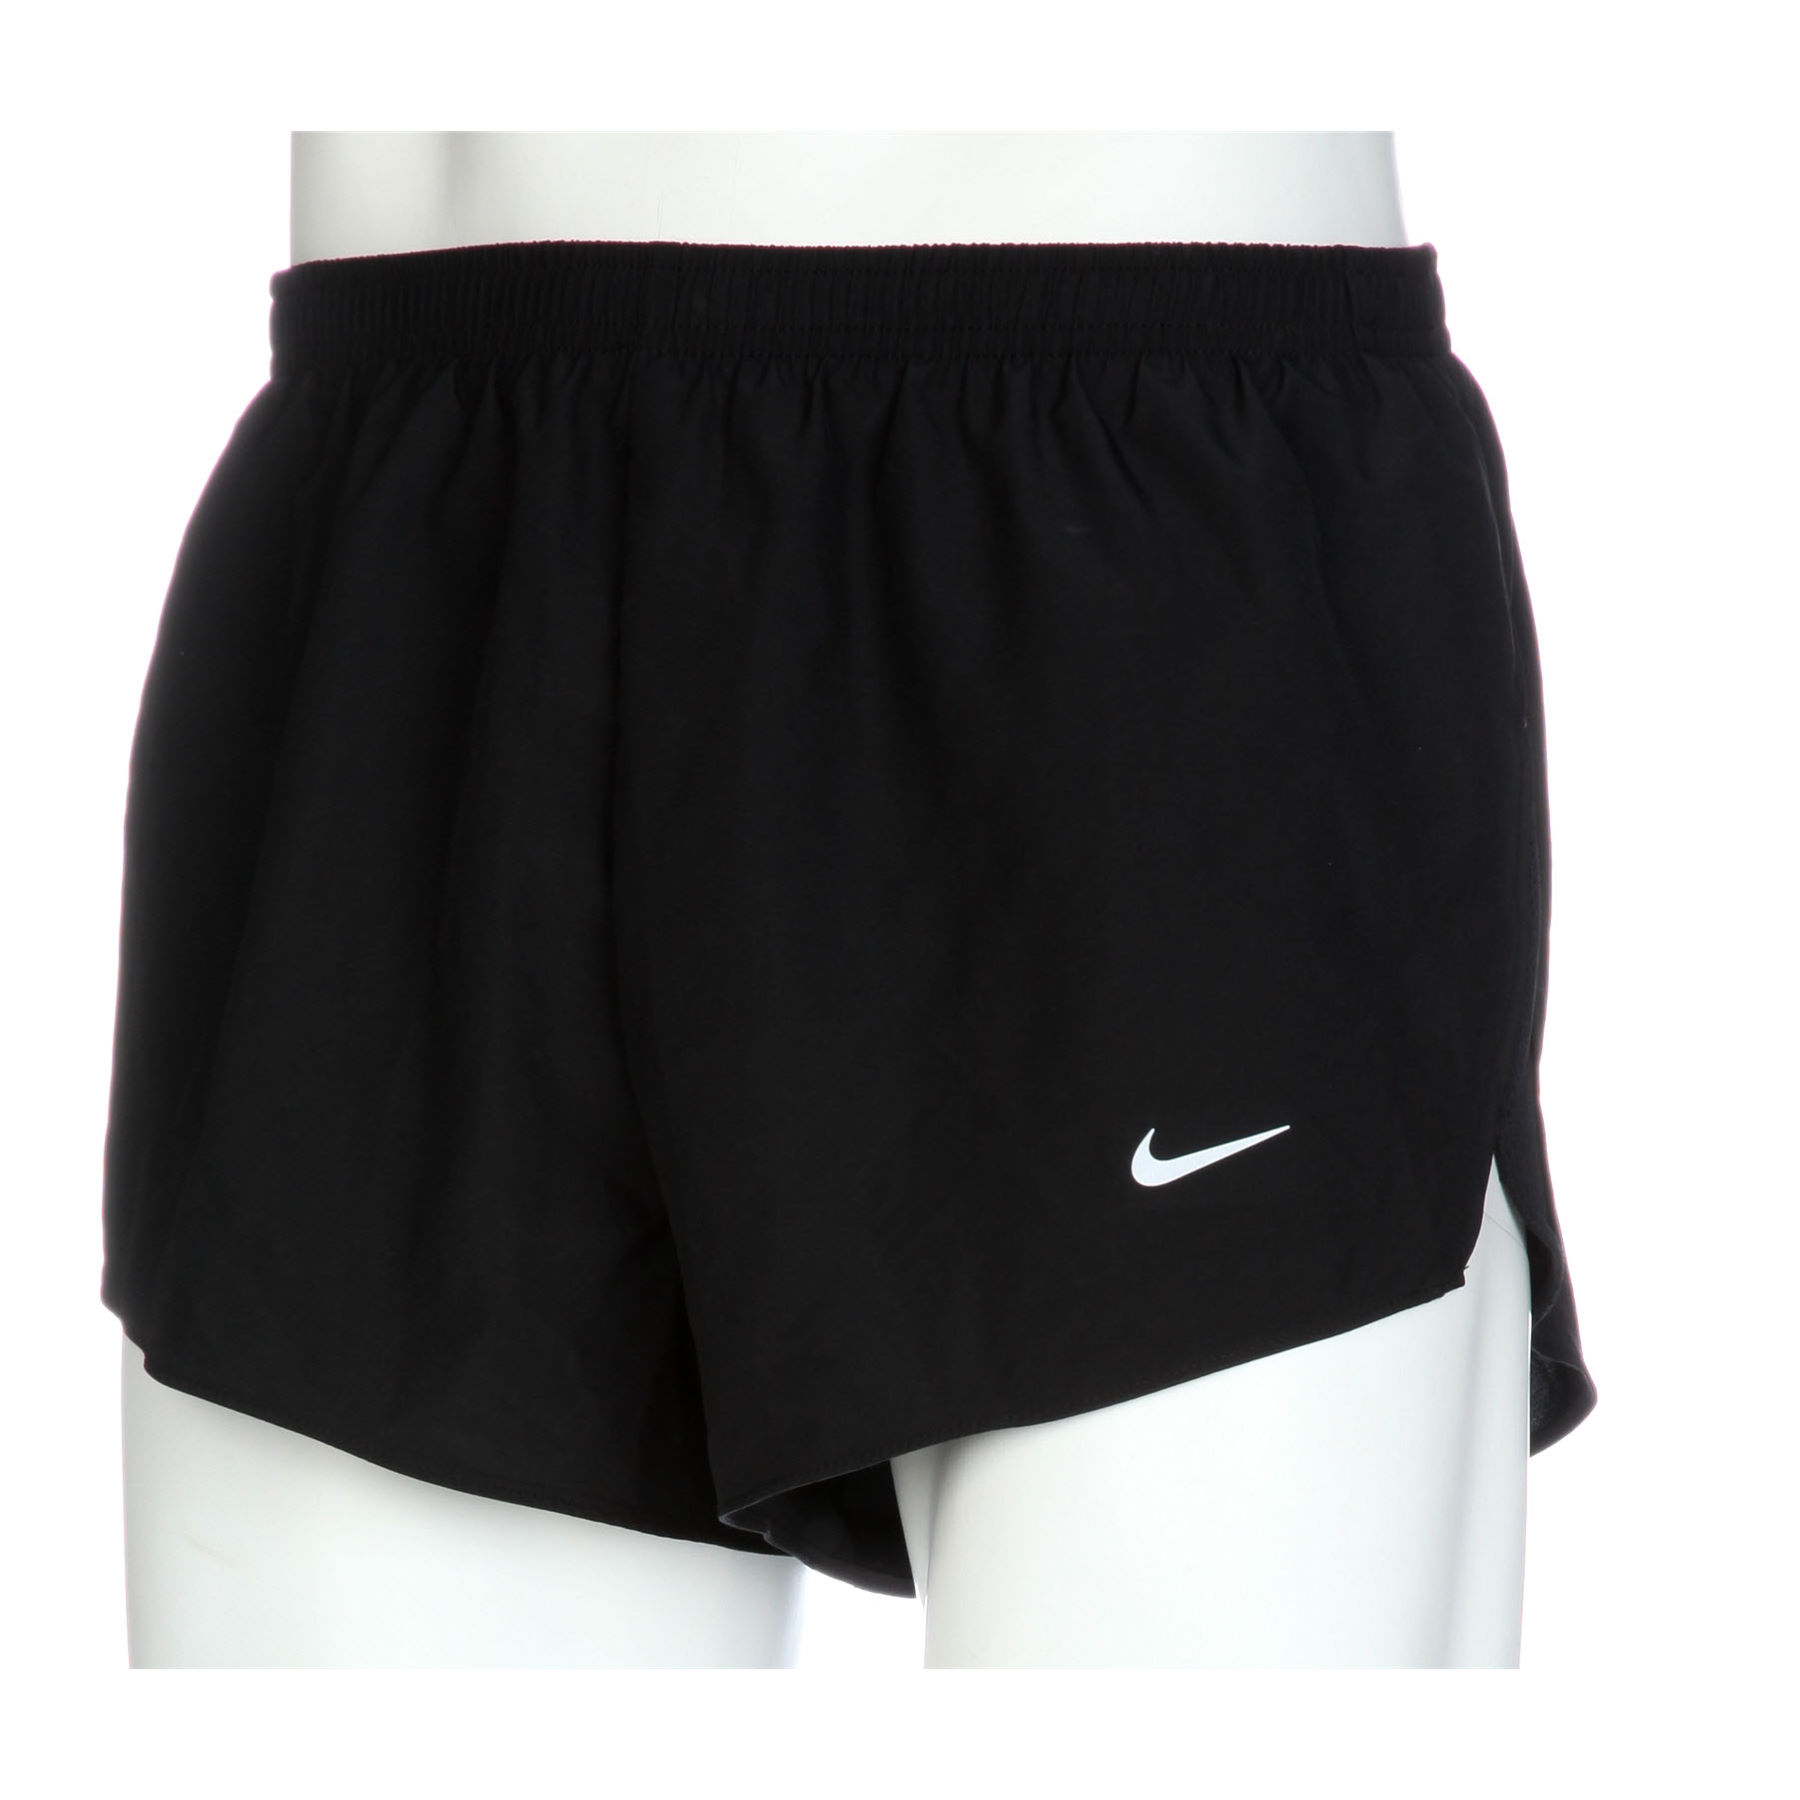 wiggle nike 2 inch tempo split short aw12 not used running shorts. Black Bedroom Furniture Sets. Home Design Ideas